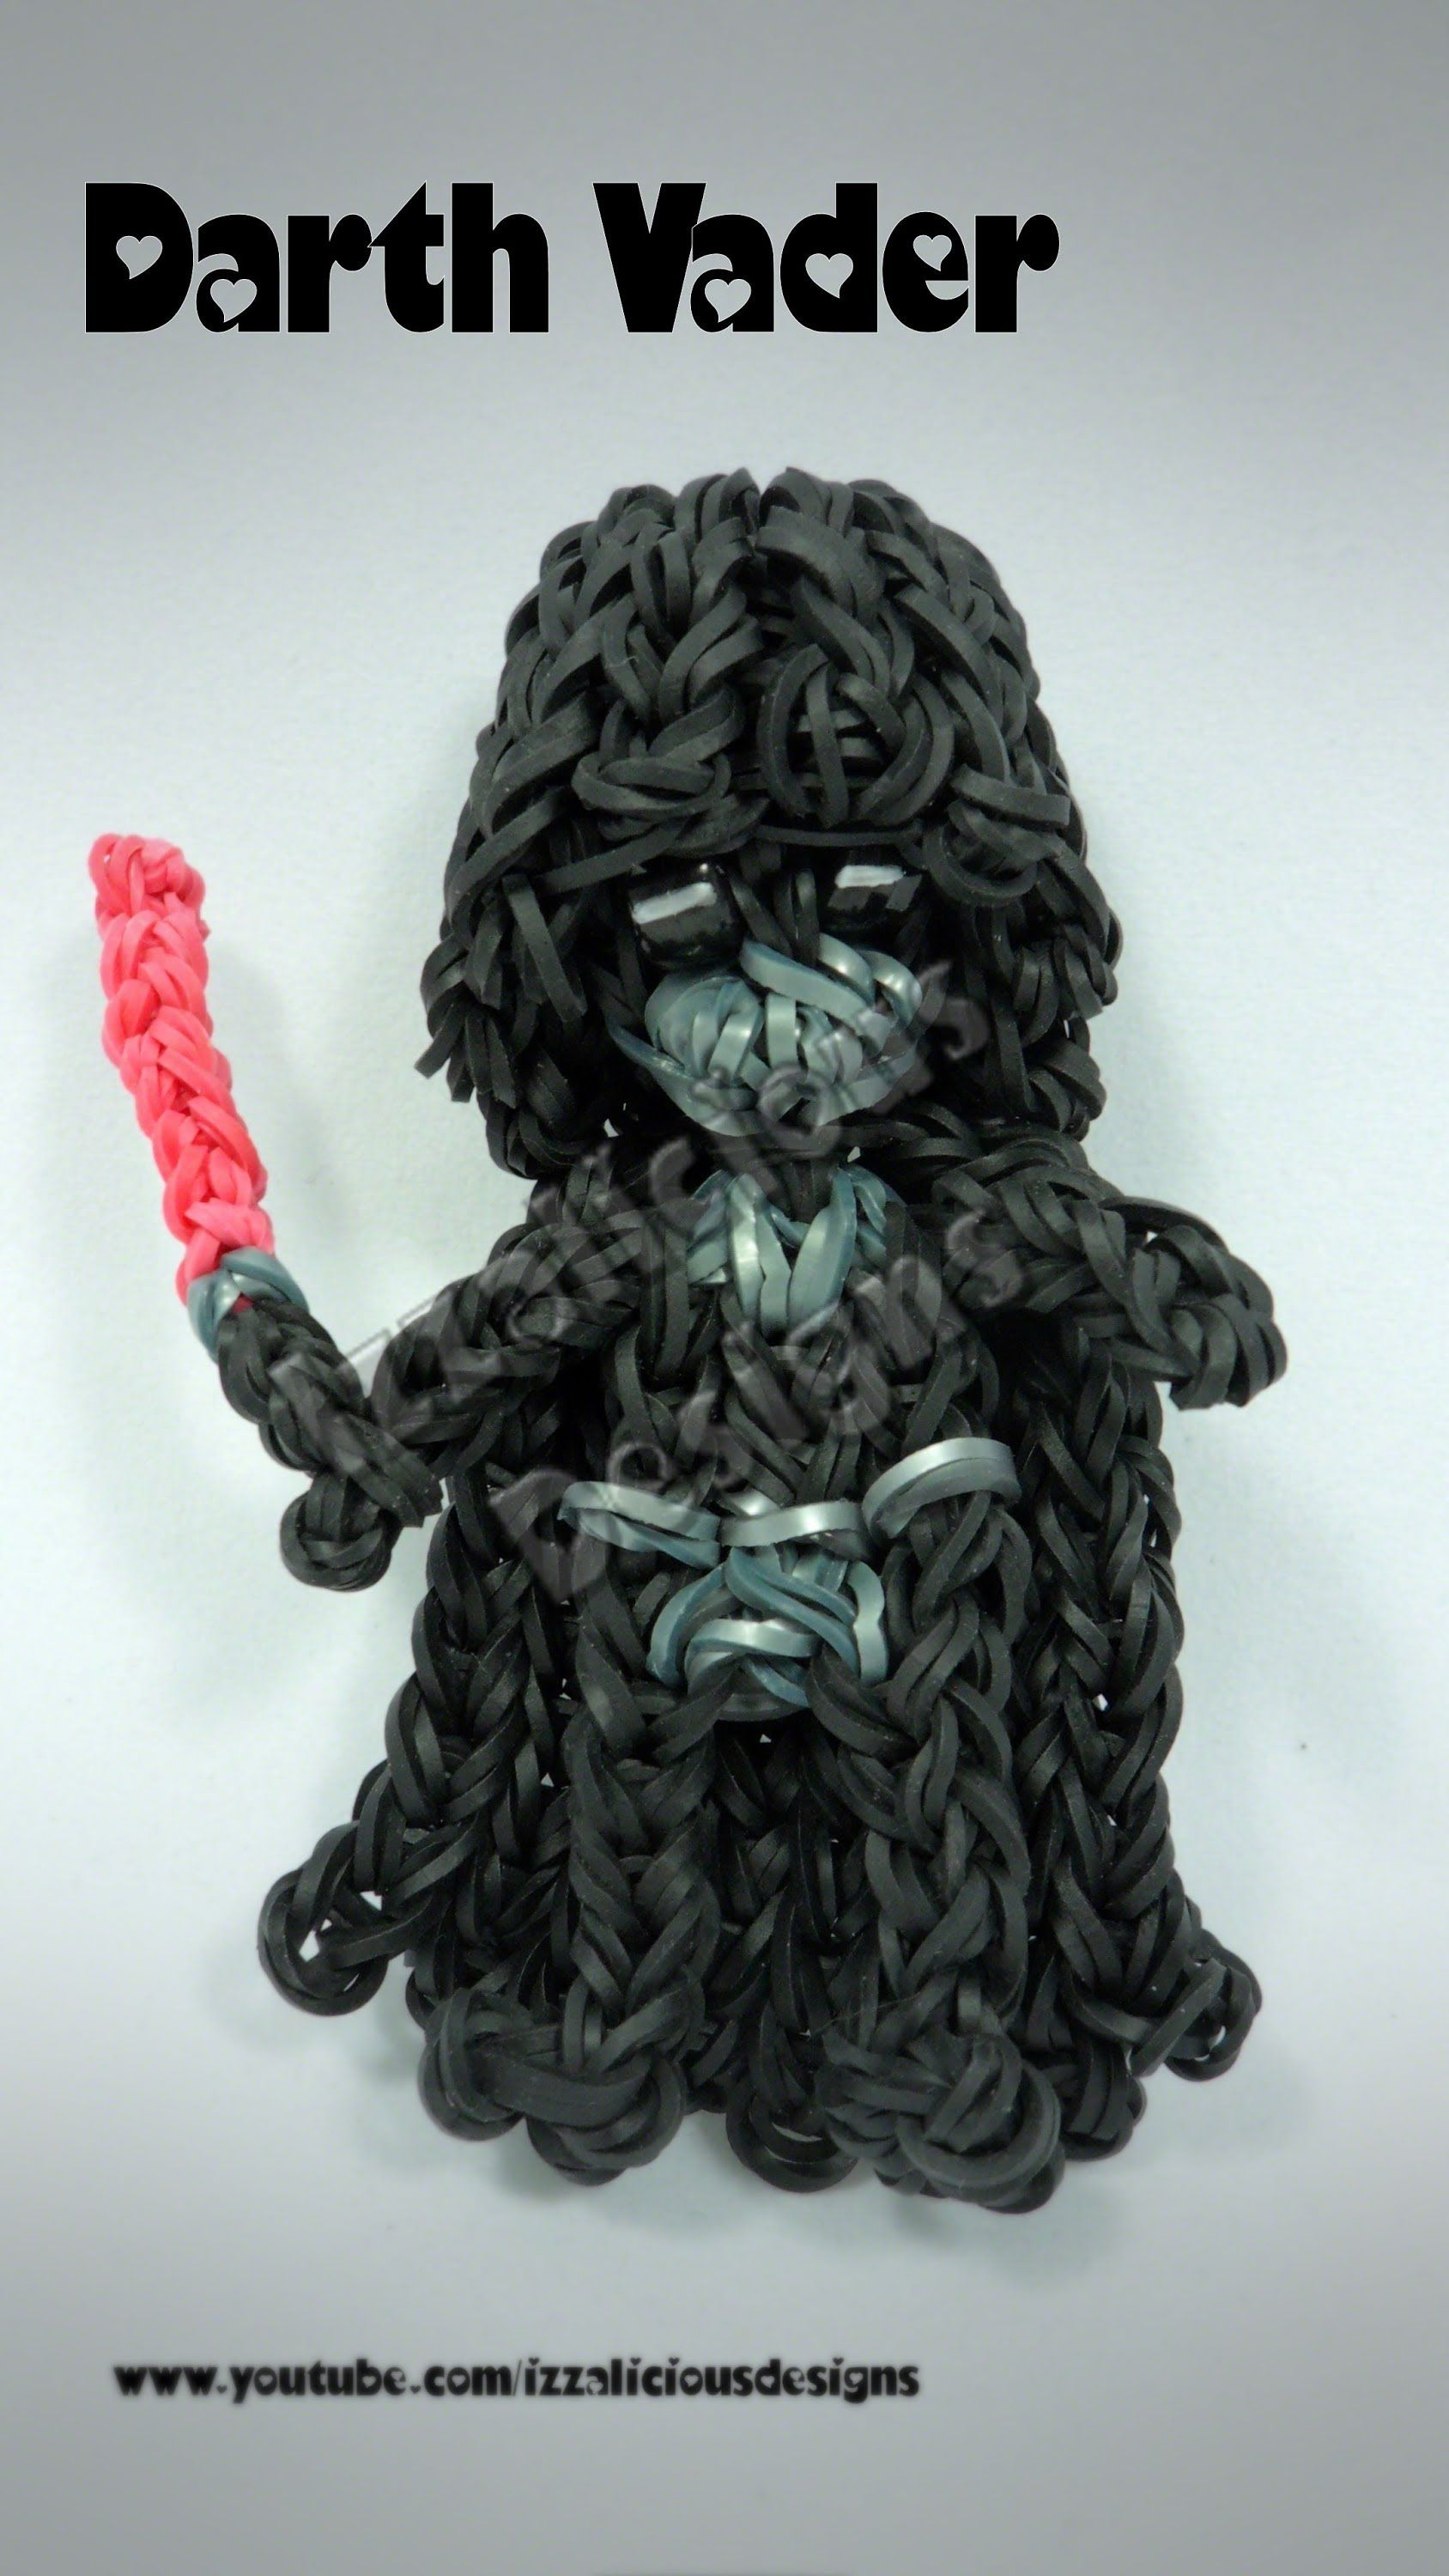 Rainbow loom darth vader charm action figure tutorial by izzalicious